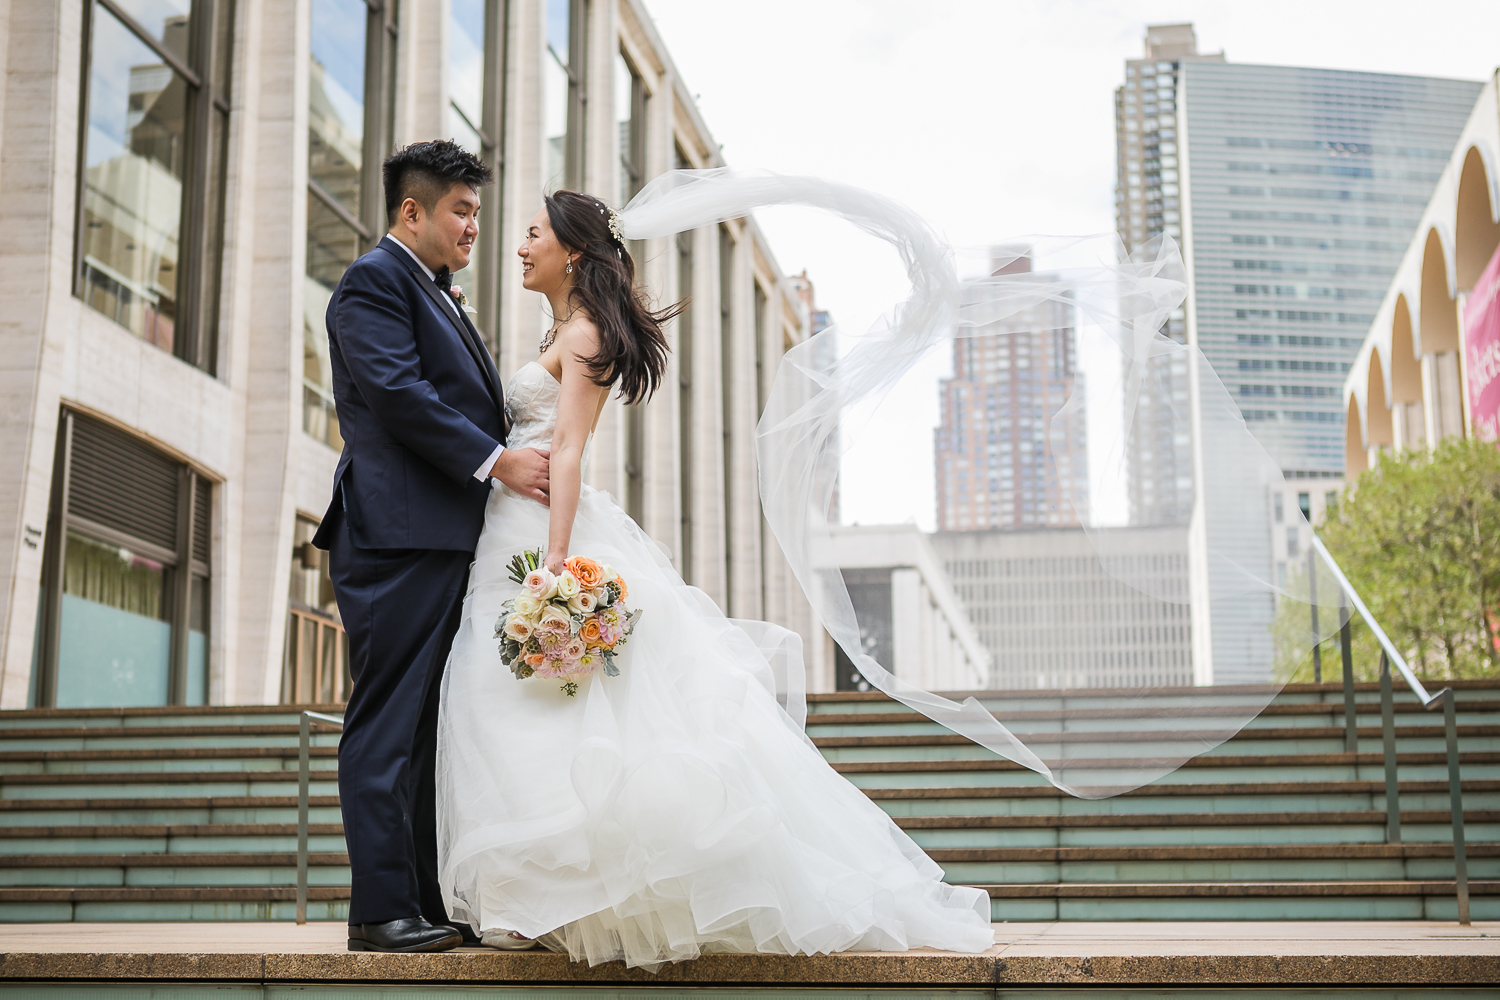 Wind blowing a bride's veil while posing for wedding portraits at Lincoln Center in New York City | Lincoln Center Wedding Photos | Jason and Susanna's Glam NYC Elopement